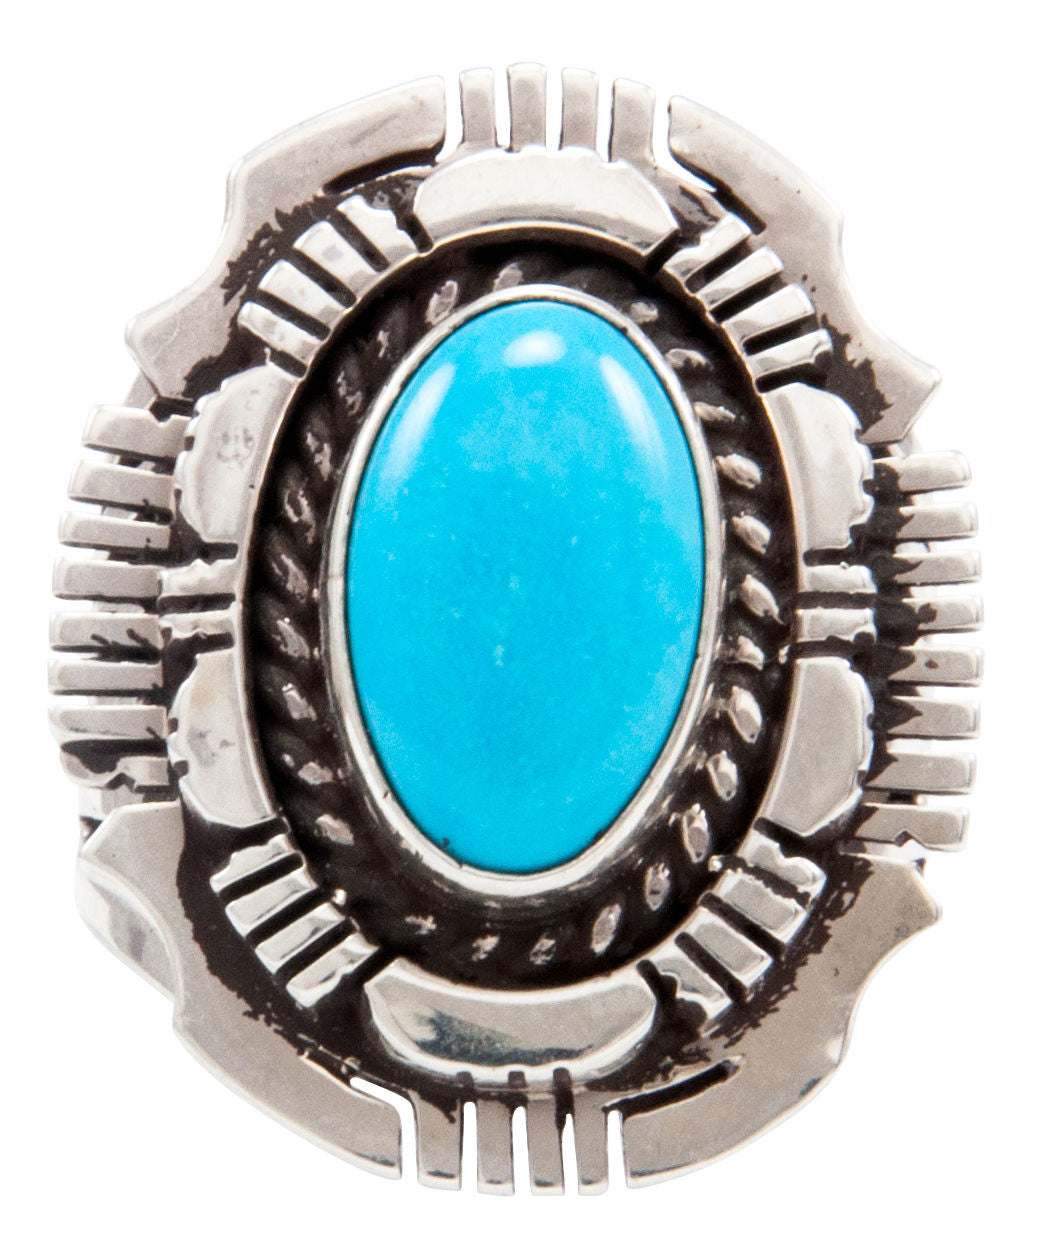 Navajo Native American Kingman Turquoise Ring Size 6 1/2 by Gary Spencer SKU232038